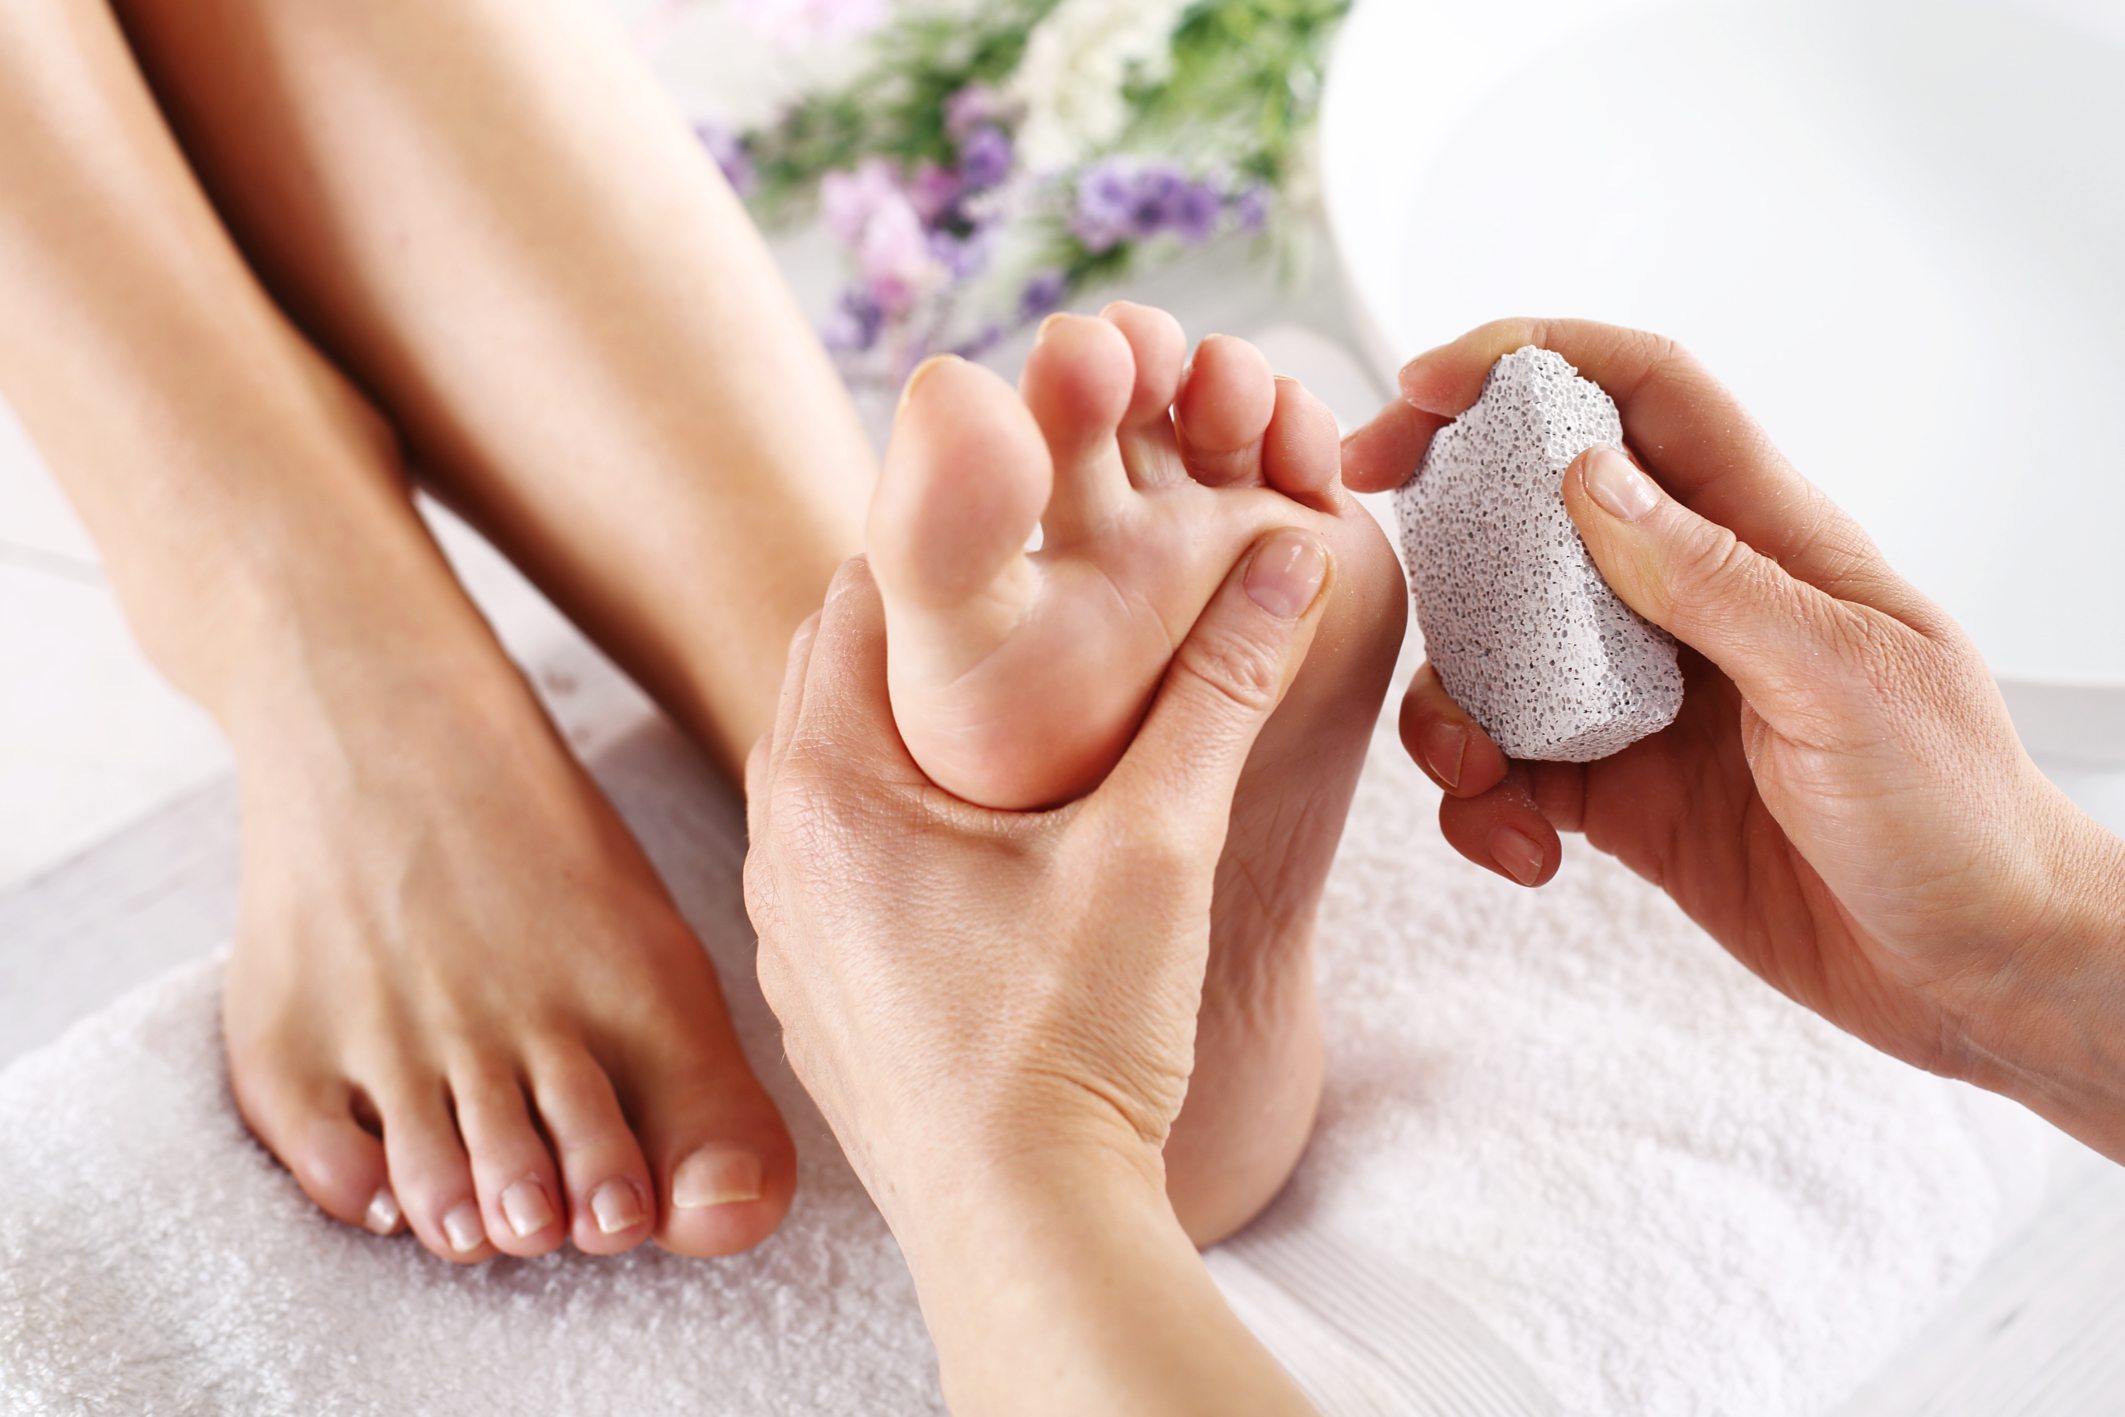 How to treat peeling skin on feet livestrong ccuart Image collections